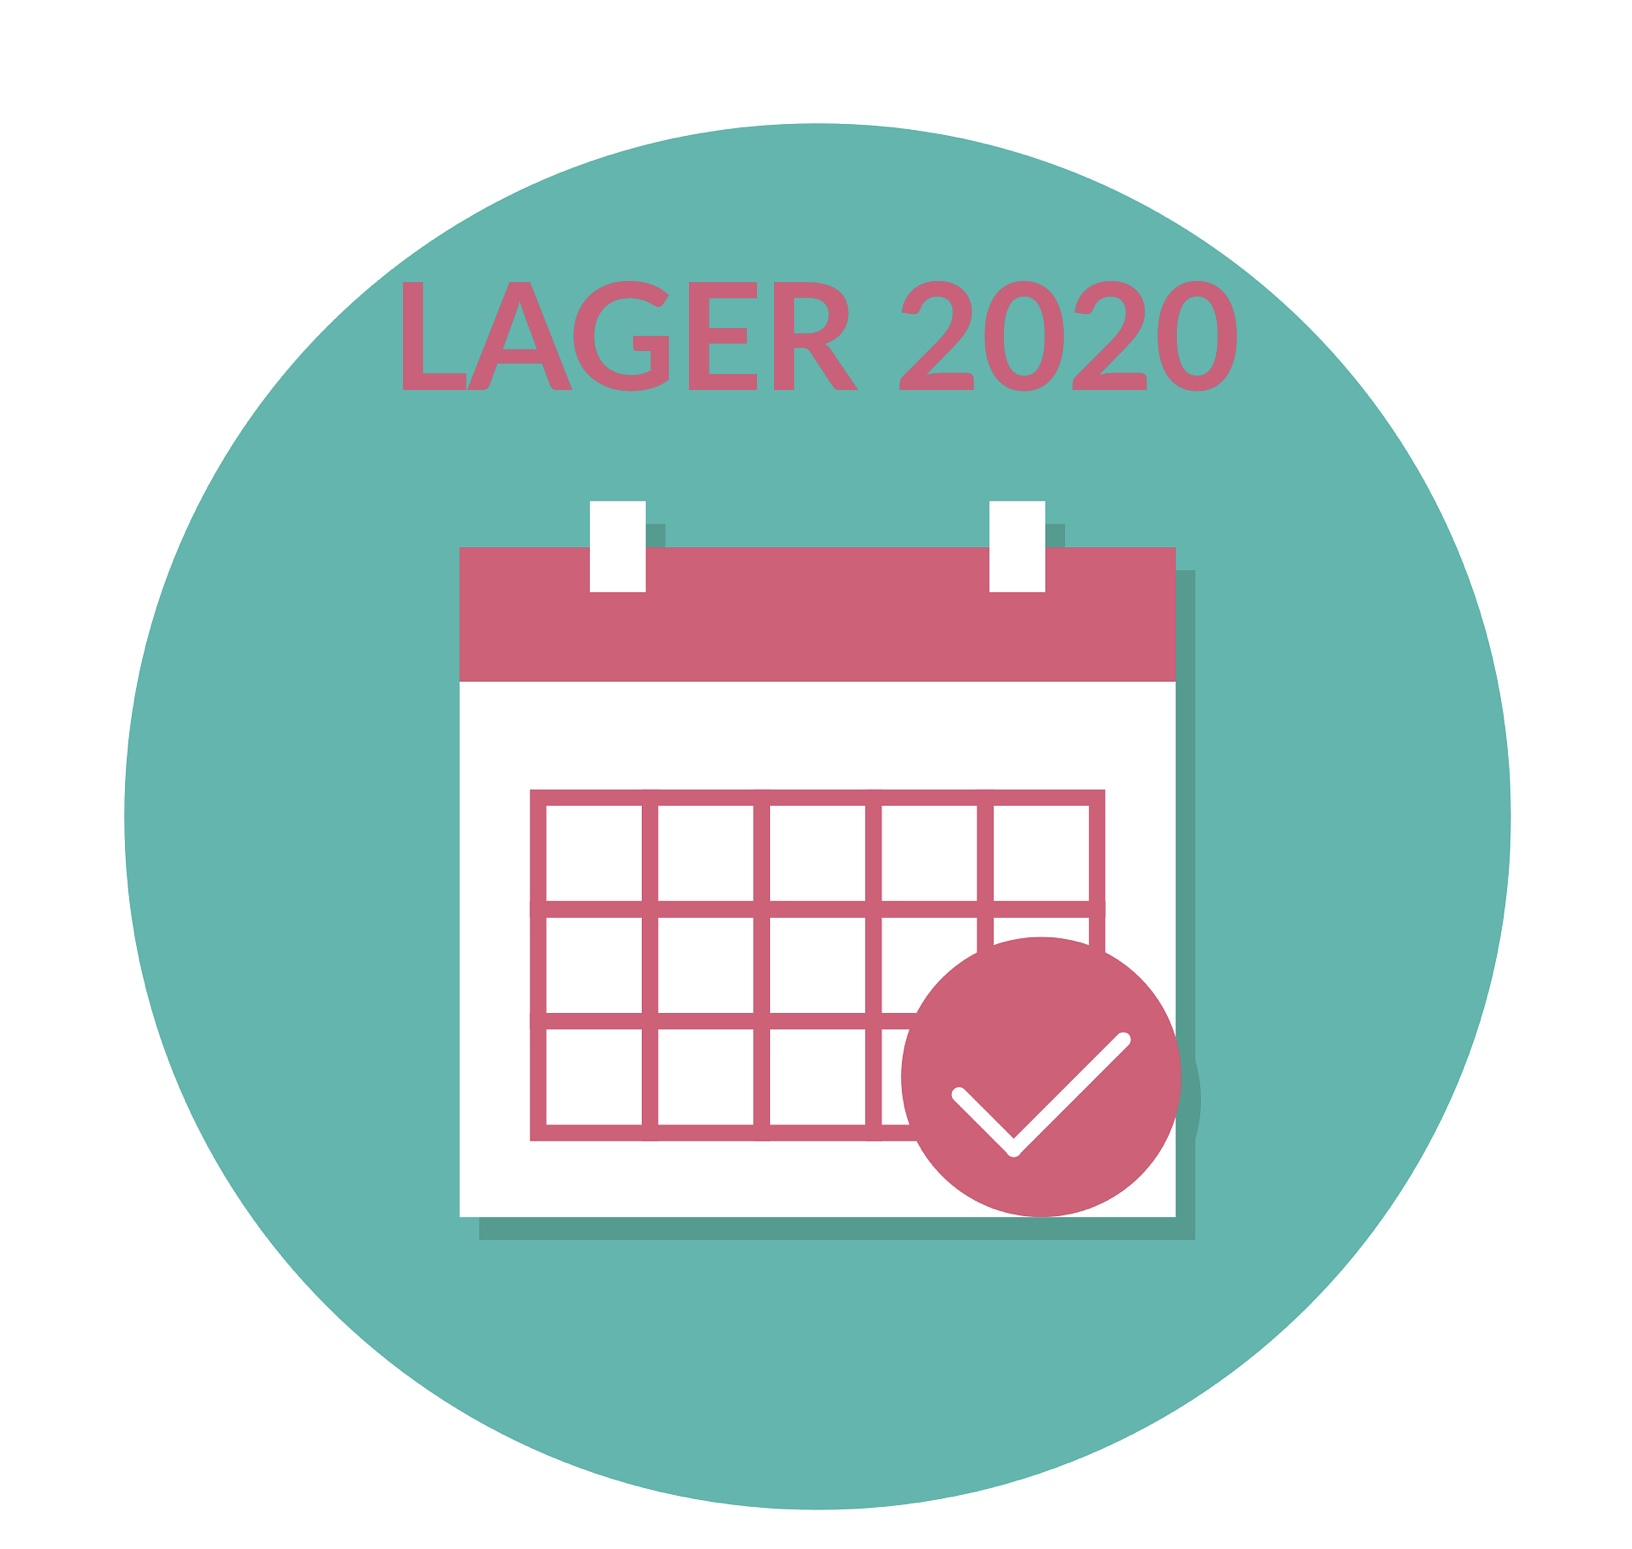 Lager 2020